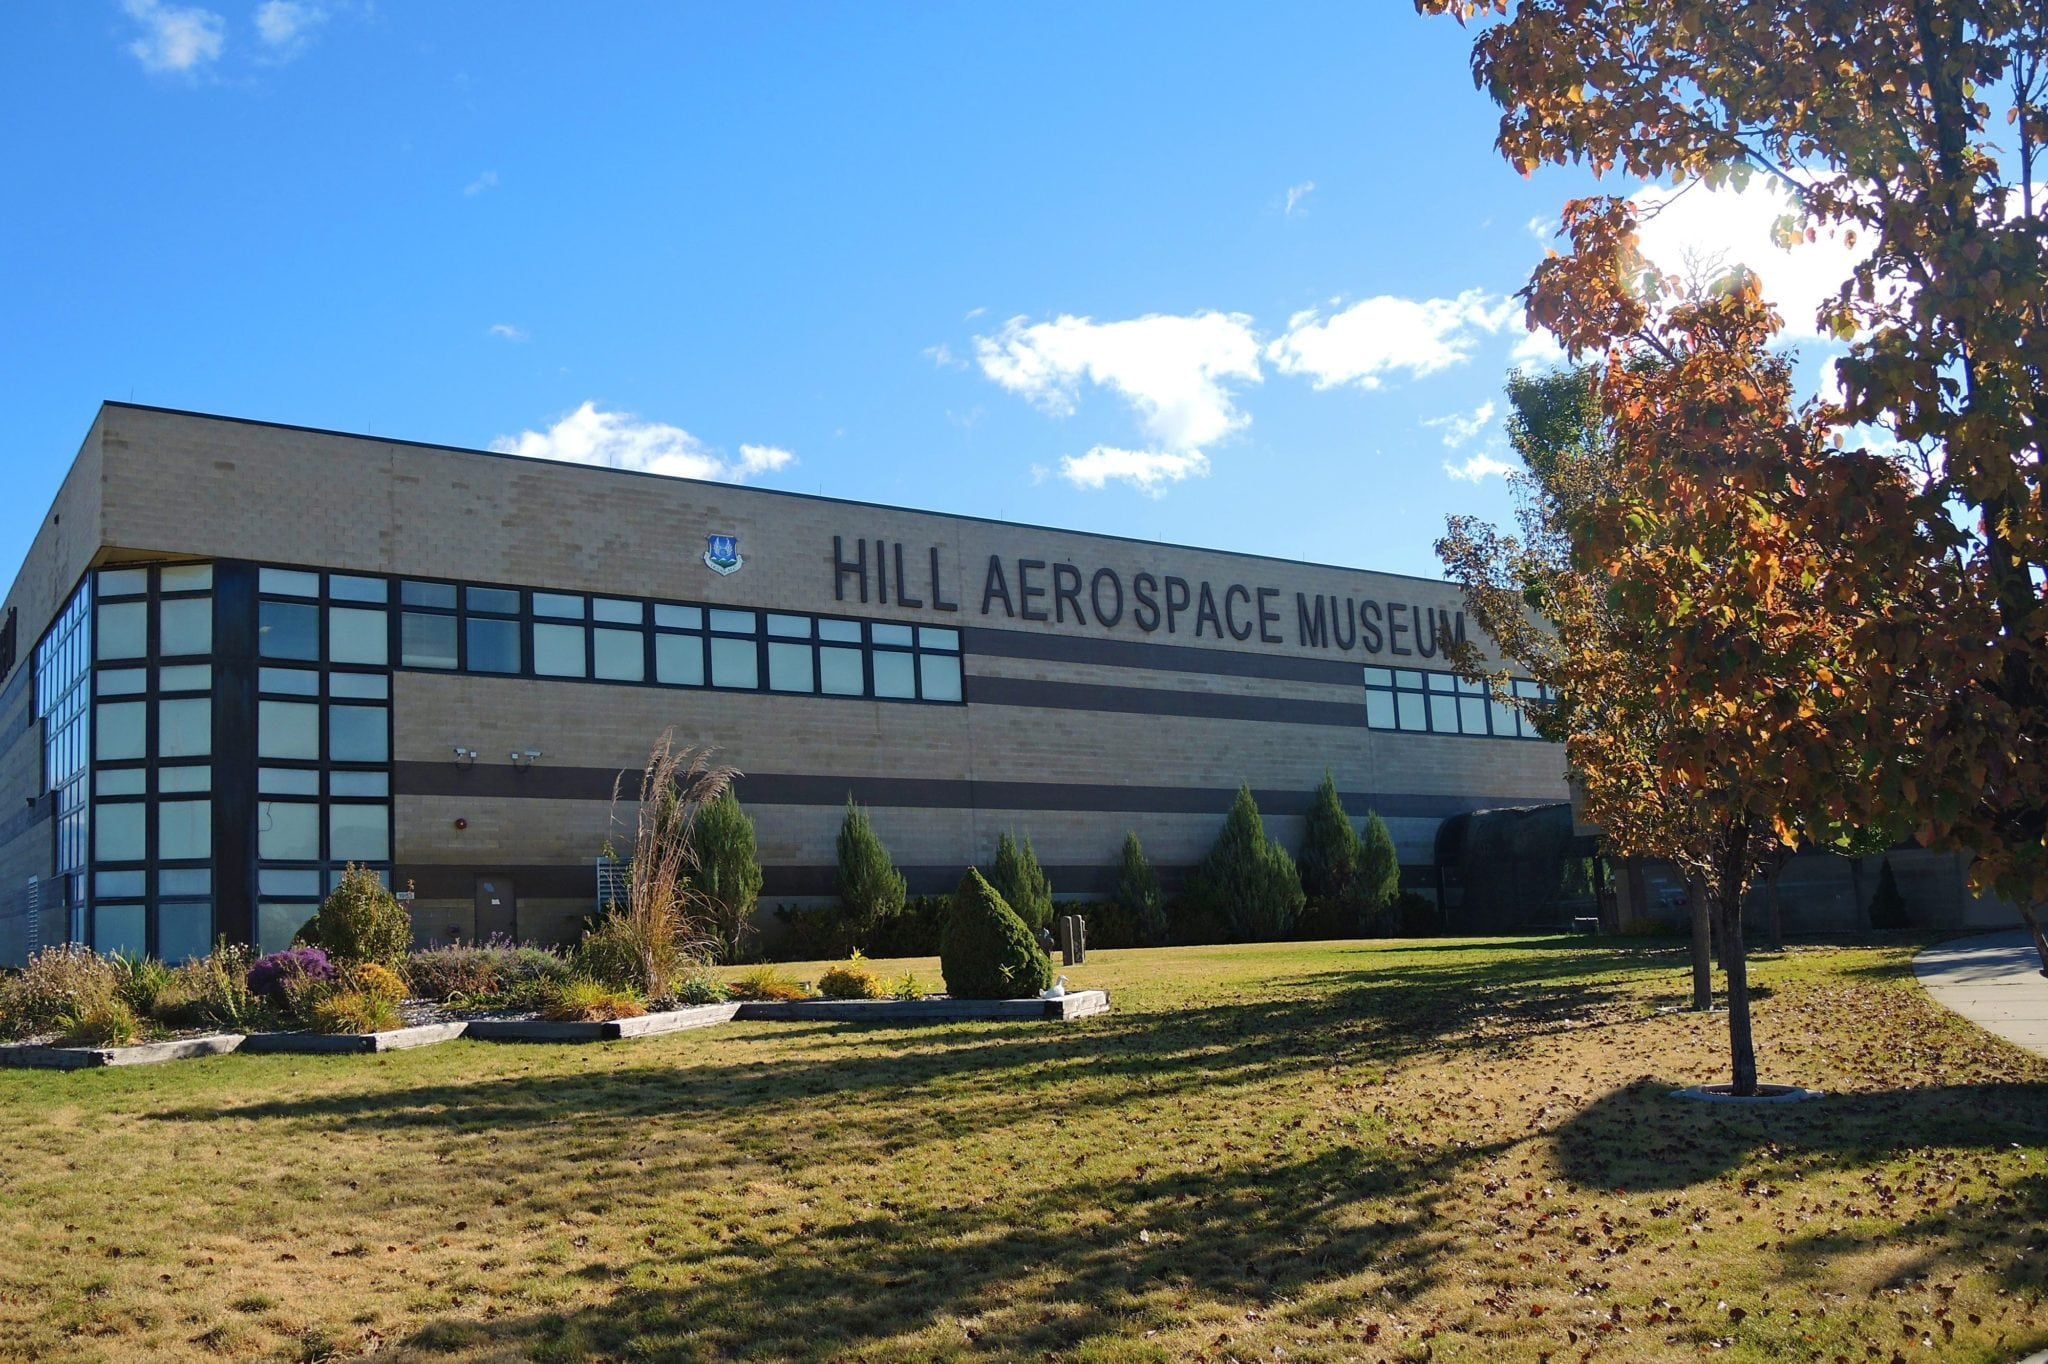 NEW HOURS as of January 1, 2015!! The Hill Aerospace Museum will now be open Monday through Saturday from 9:00 am – 4:30 pm. Come see us and Take a Flight through History!